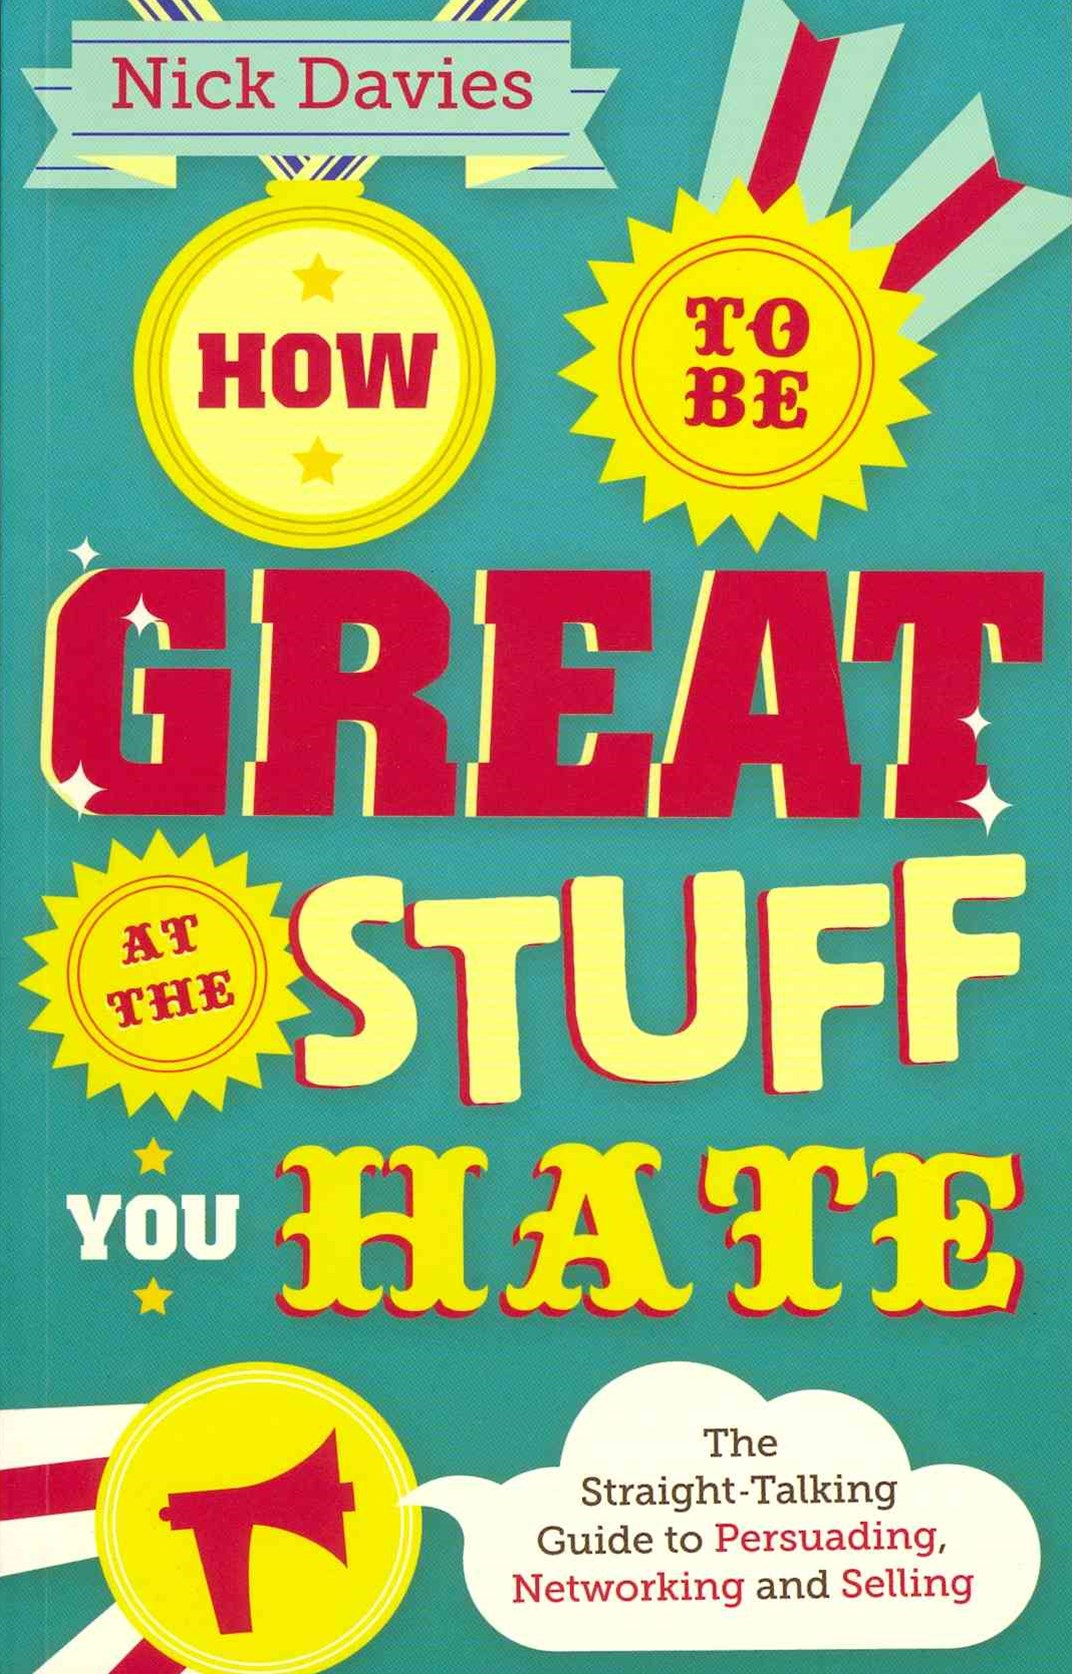 How to Be Great at the Stuff You Hate - the       Straight-talking Guide to Networking, Persuading  and Selling